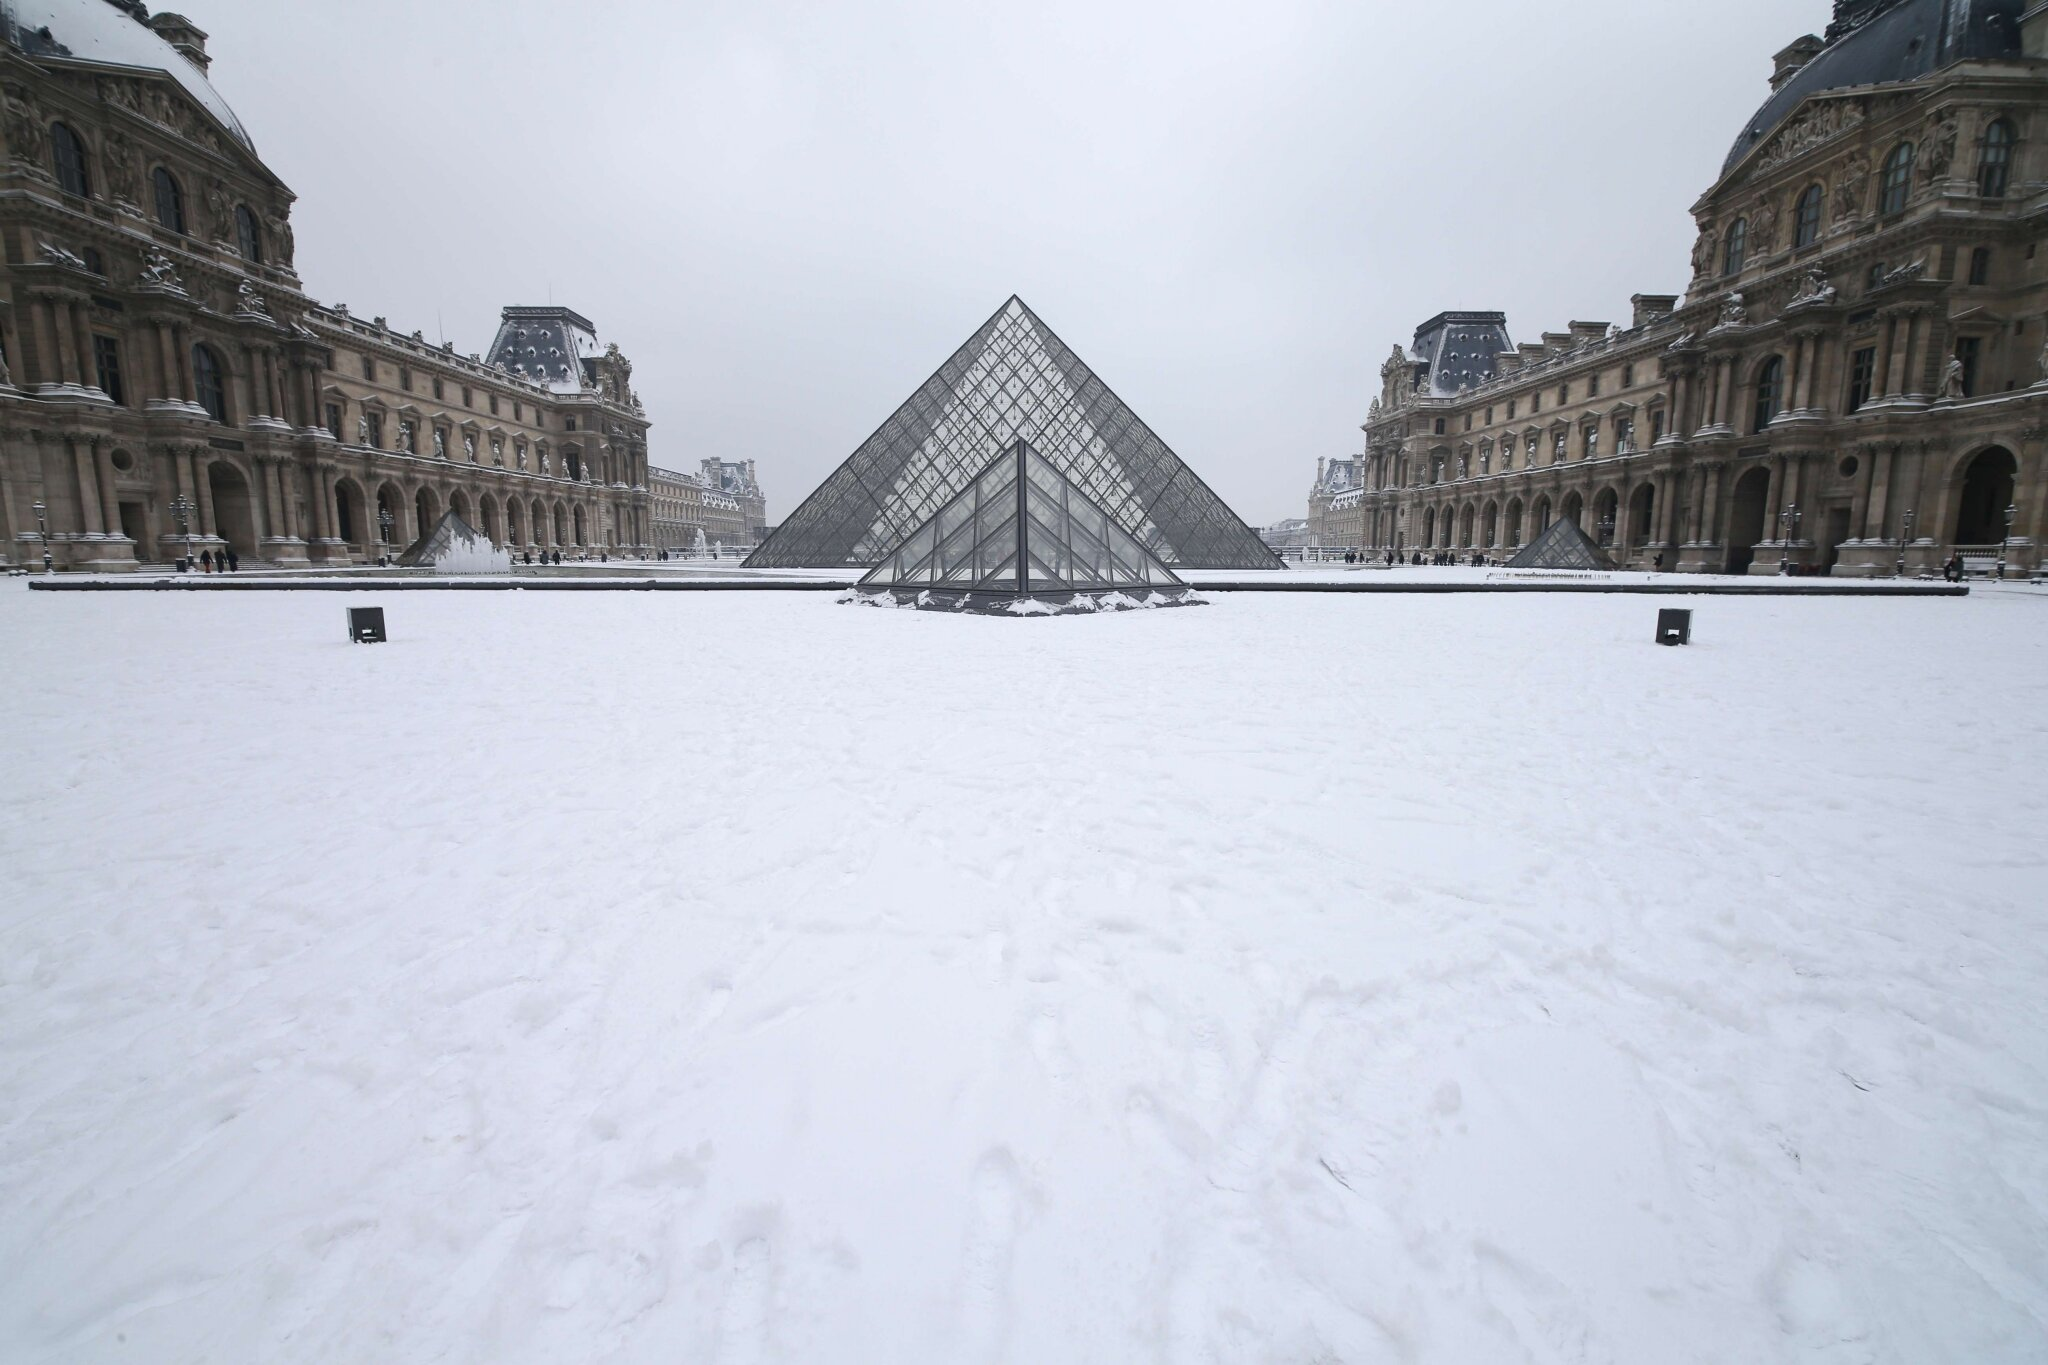 Paris sous la neige. © Photo Michel Stoupak. Sam 19.01.2013, 10:57.